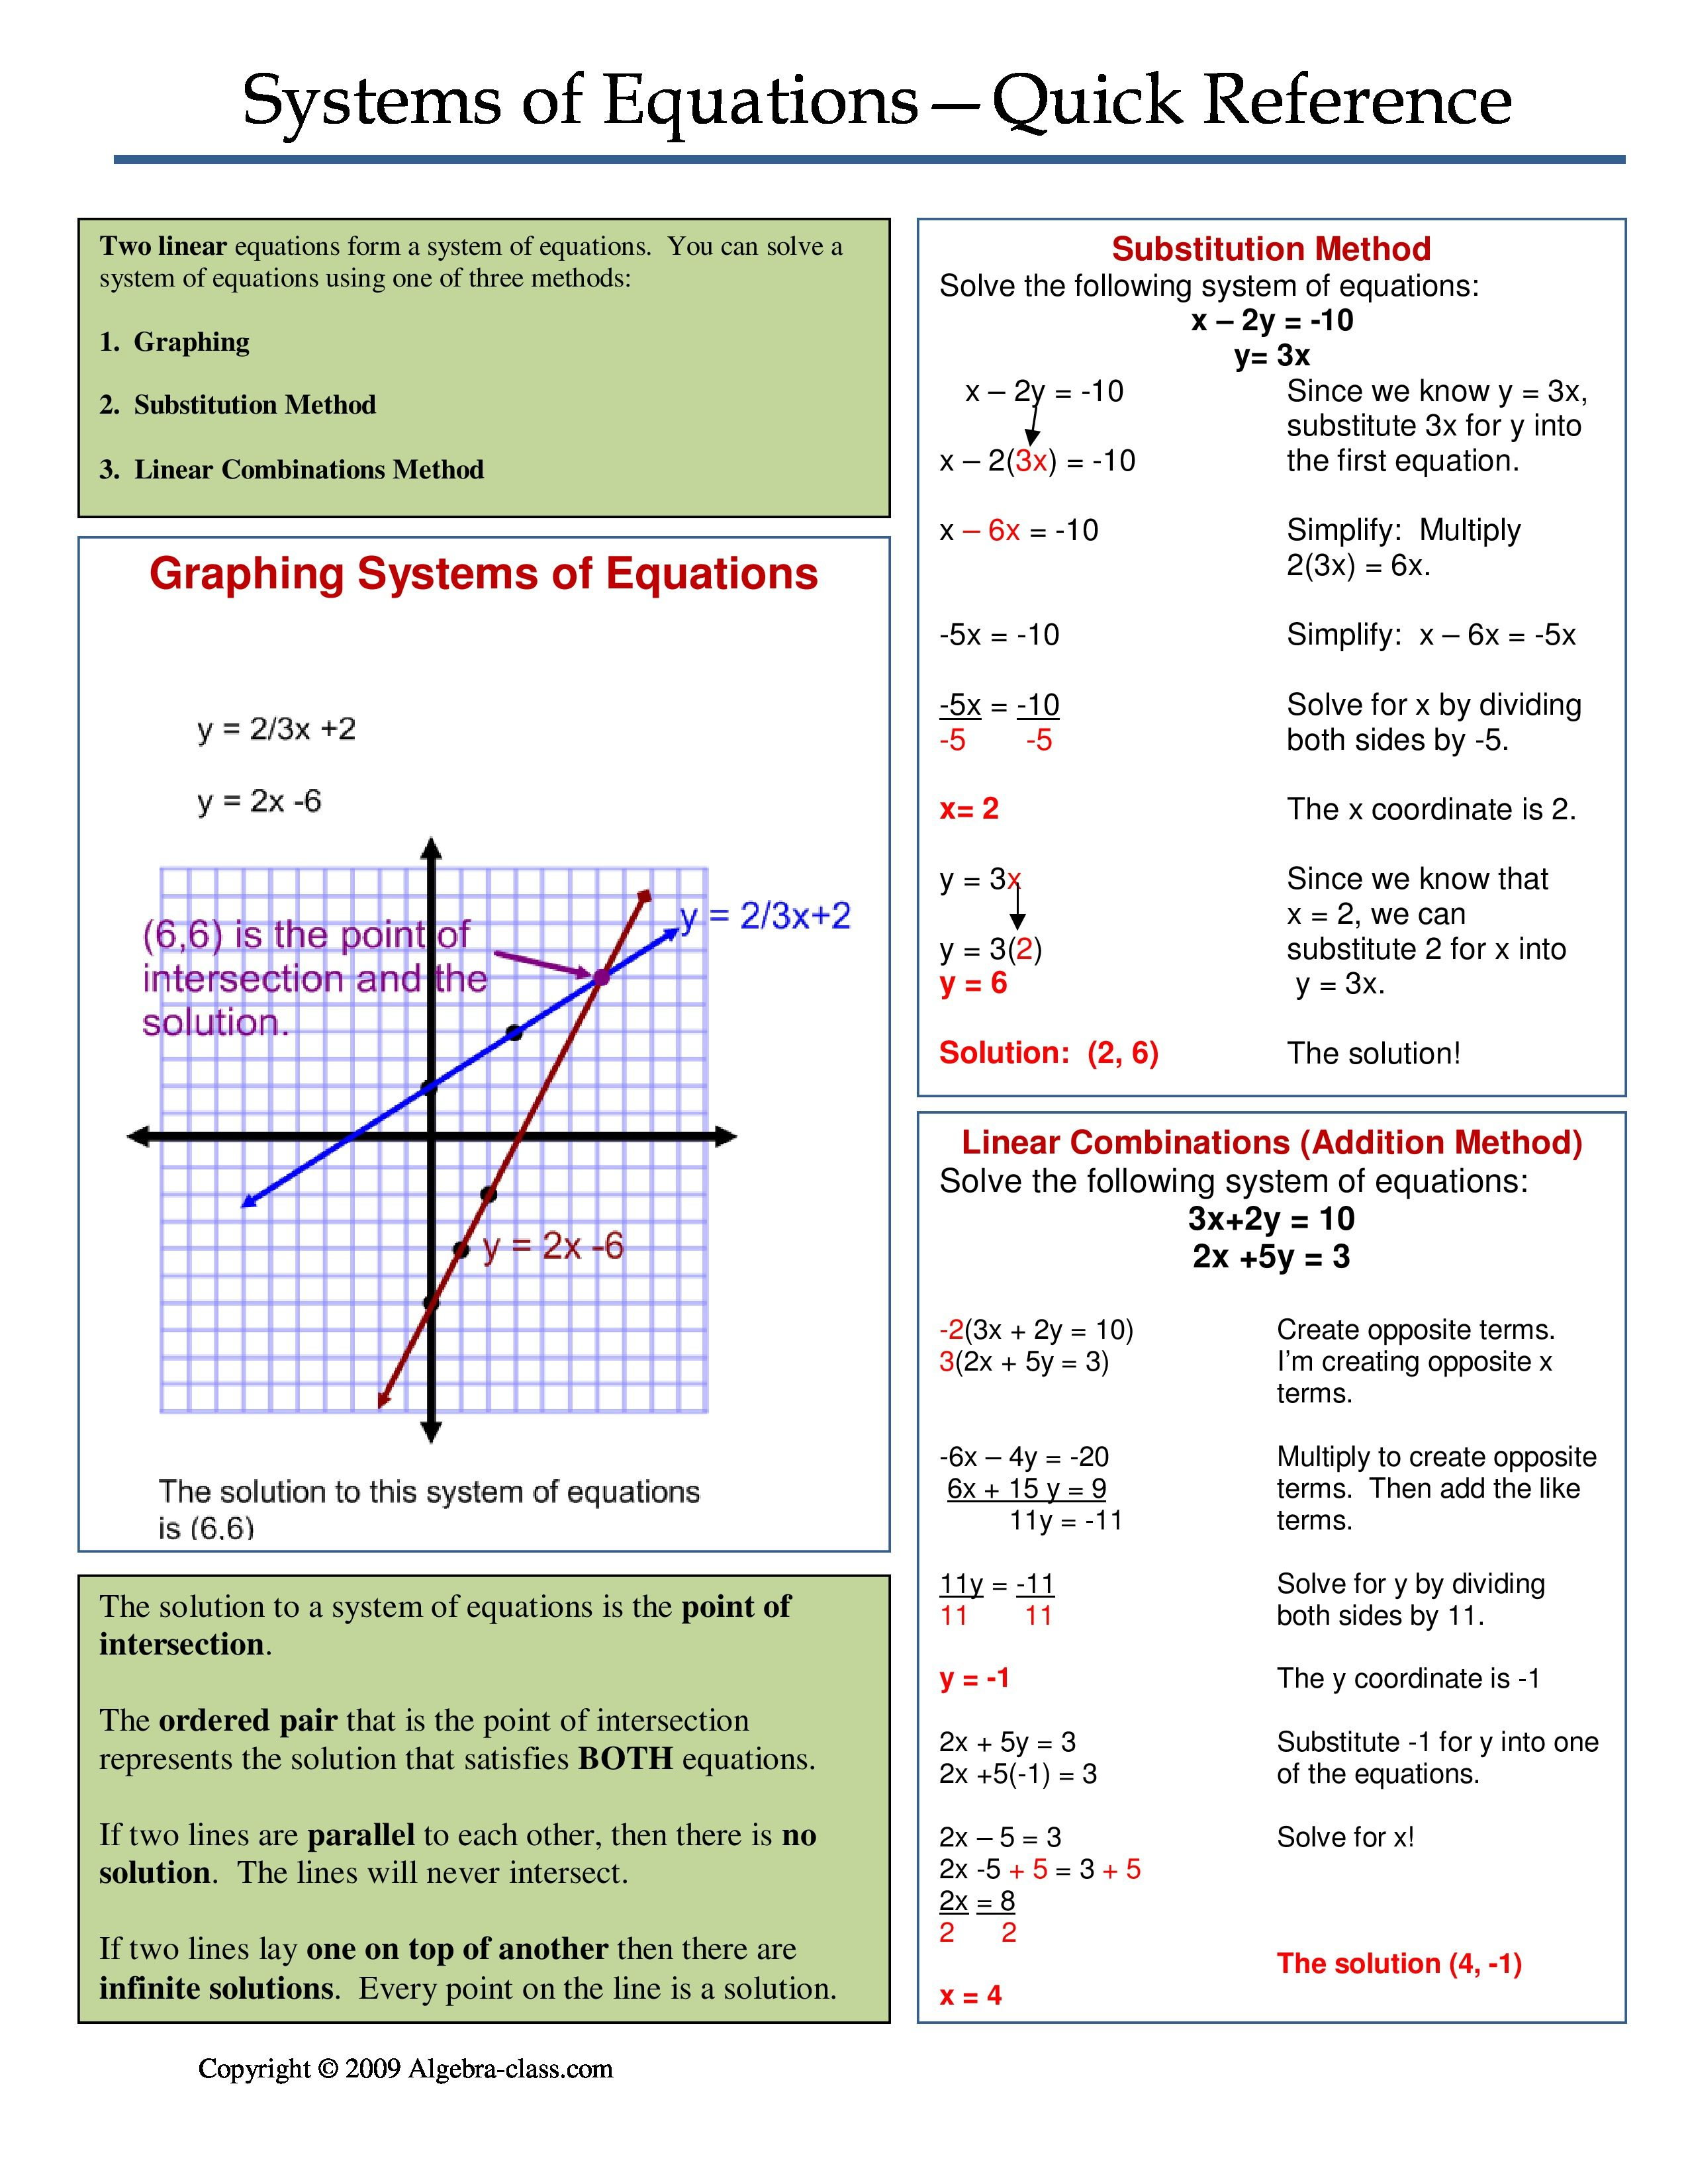 medium resolution of One page notes worksheet for Systems of Equations Unit.   Systems of  equations